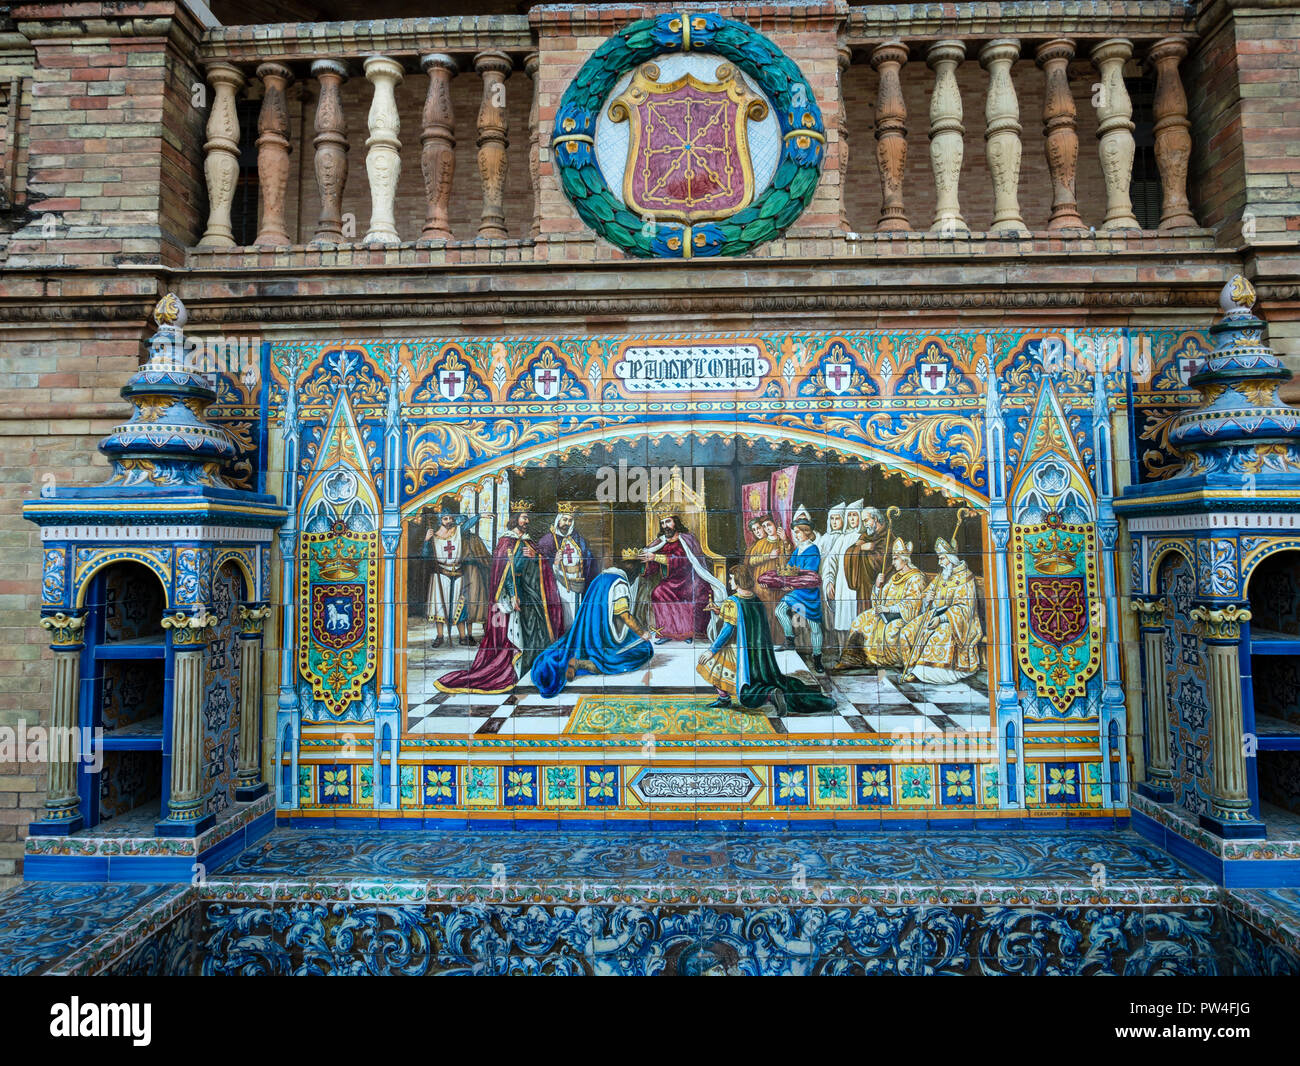 Alcoves tiled with  azulejos tiles. The Plaza de Espana, Seville, Andalusia, Spain. - Stock Image